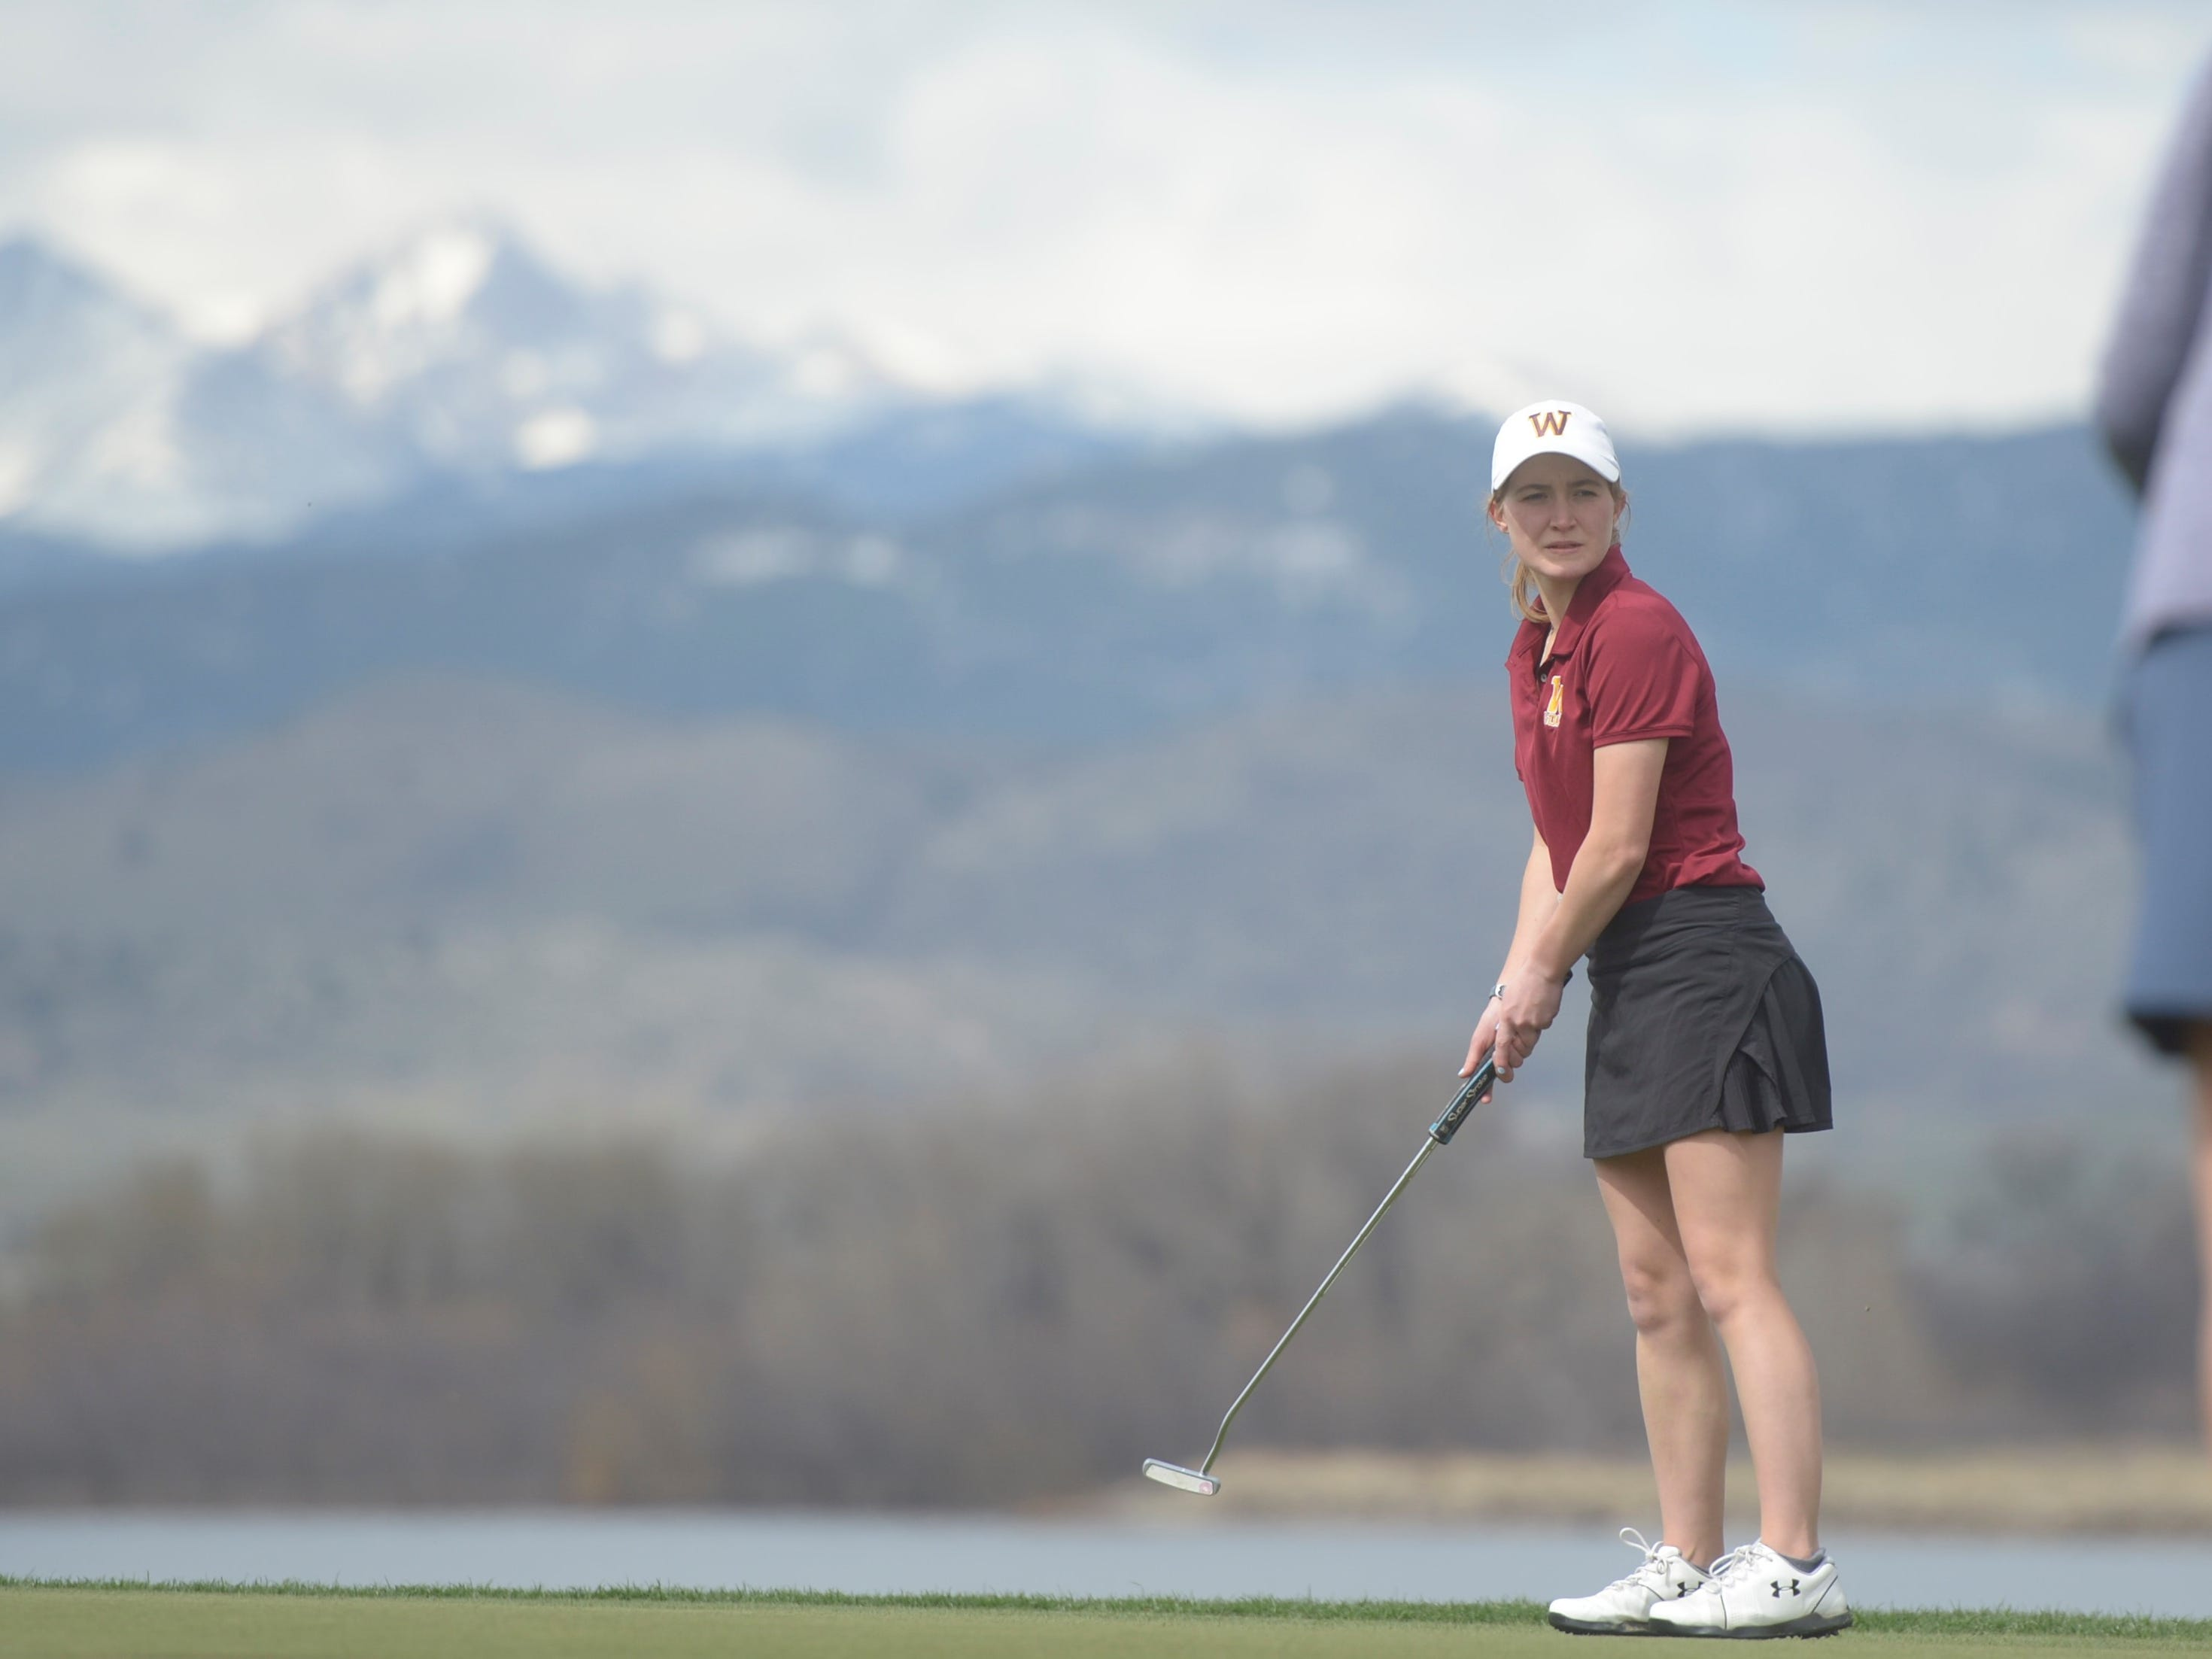 Windsor golfer Kinsey Smith watches her putt on hole No. 8 at the Tri-Valley League match at TPC Colorado in Berthoud on Monday, April 15. Windsor won the event. It's the first Tournament Players Club course in the state.